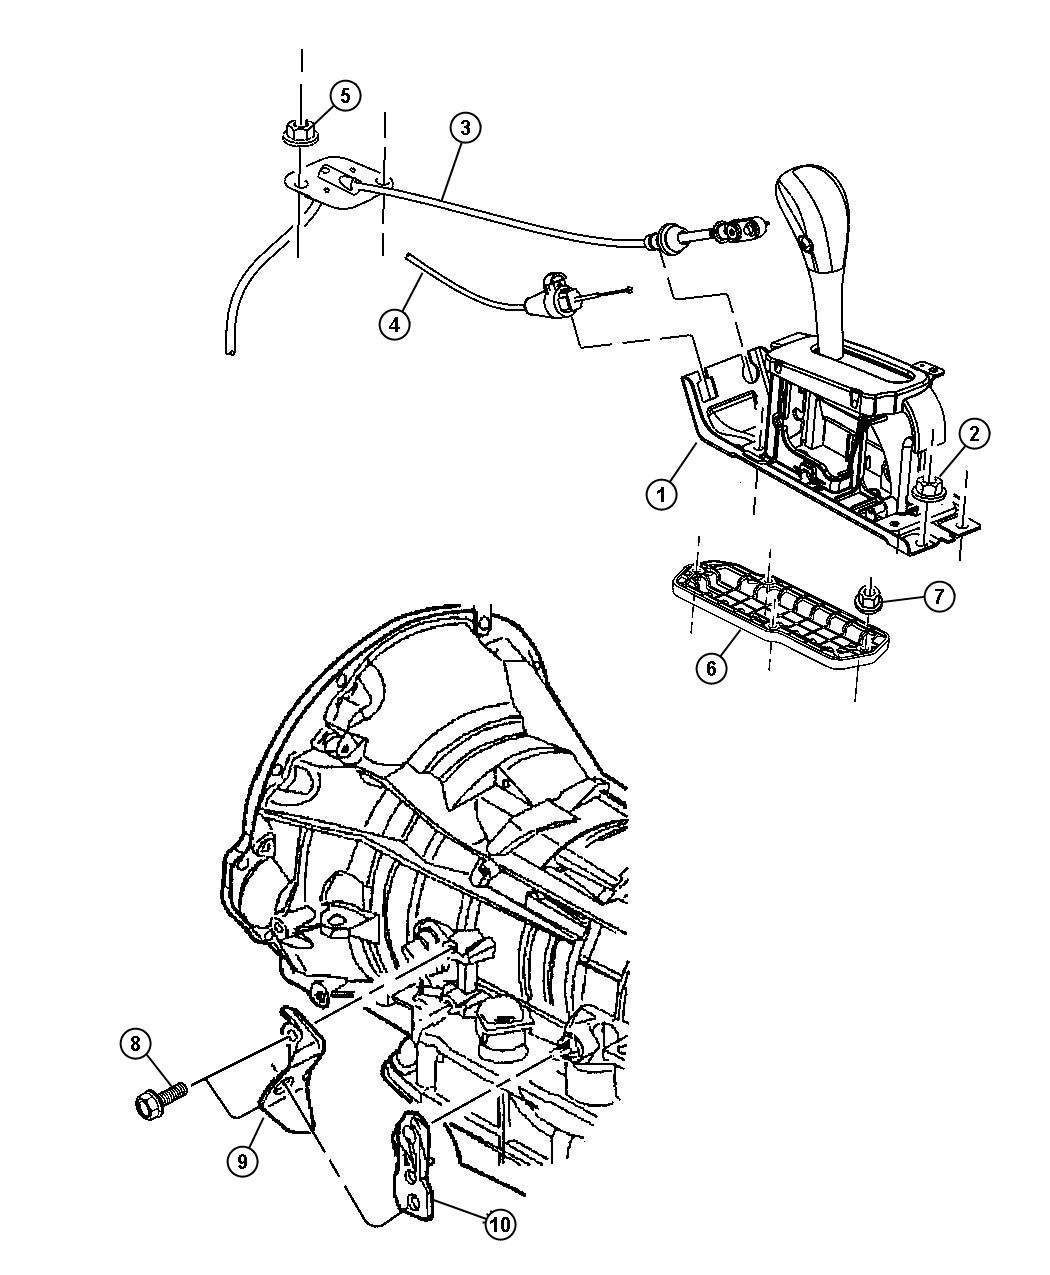 2003 Jeep Liberty Used for: HOUSING AND LEVER. Shifter